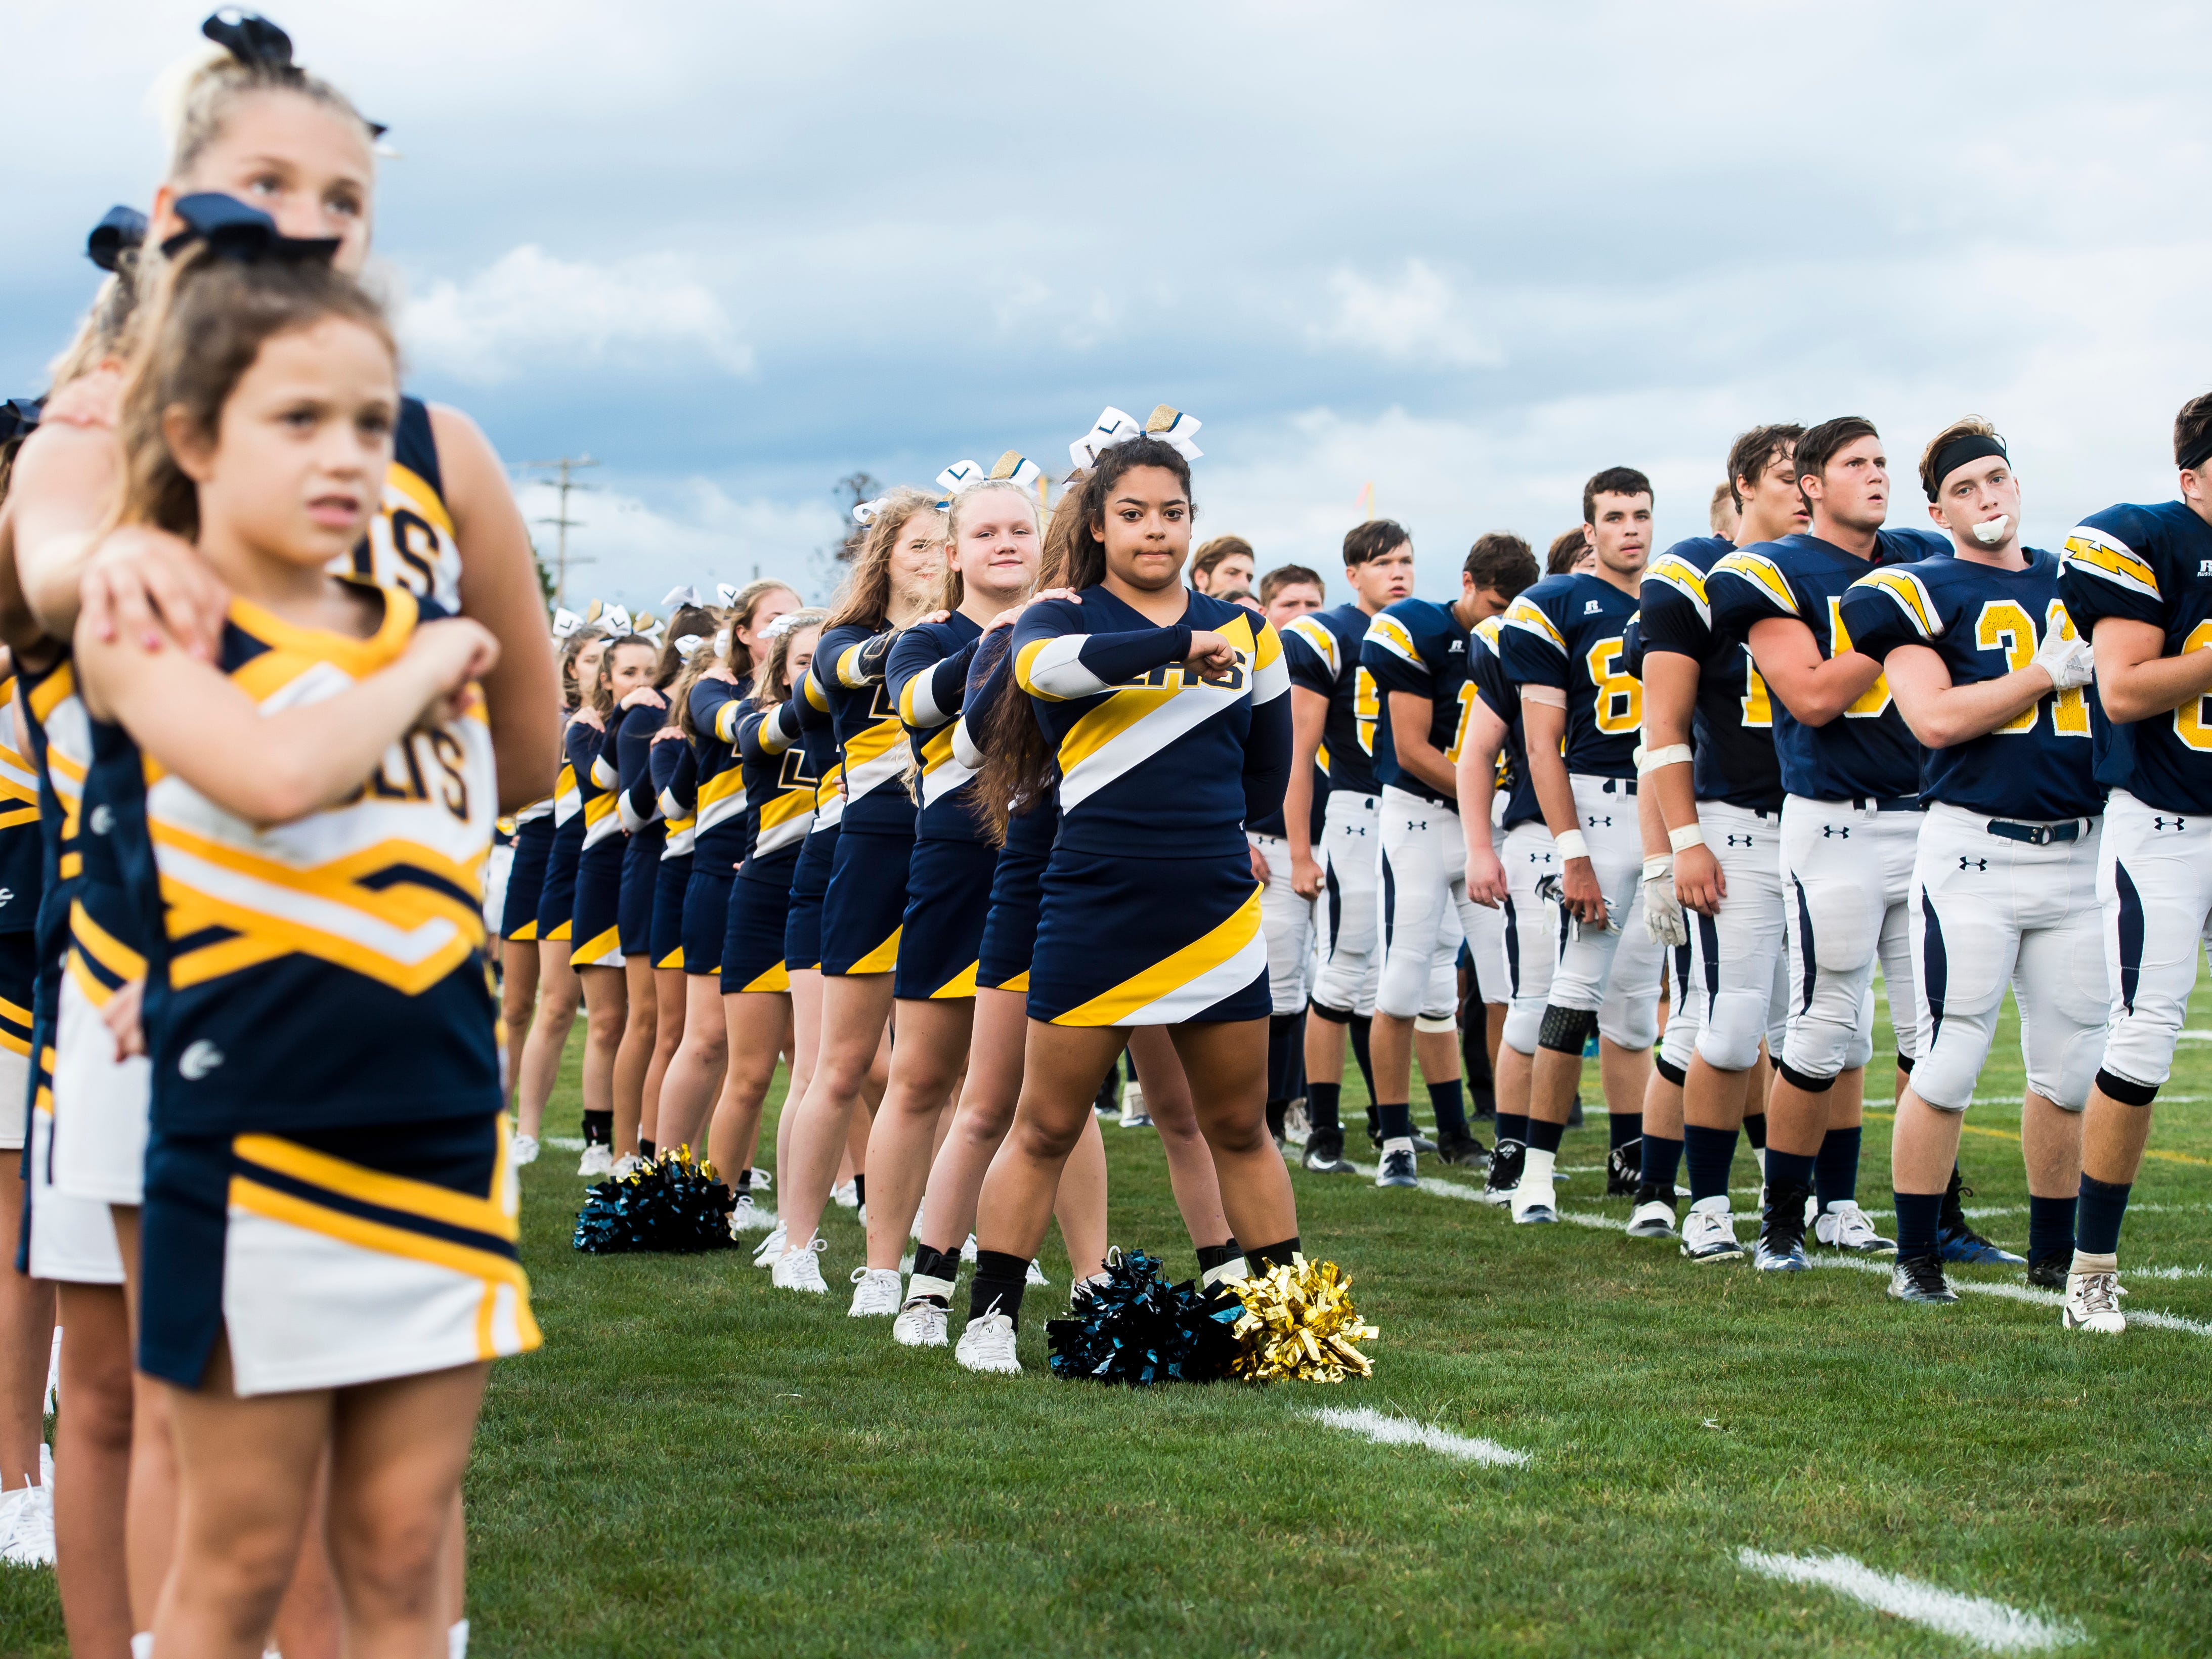 Littlestown cheerleaders and football players face the flag during the playing of the national anthem prior to Friday's game against Susquehanock. The Bolts beat the Warriors 29-14.